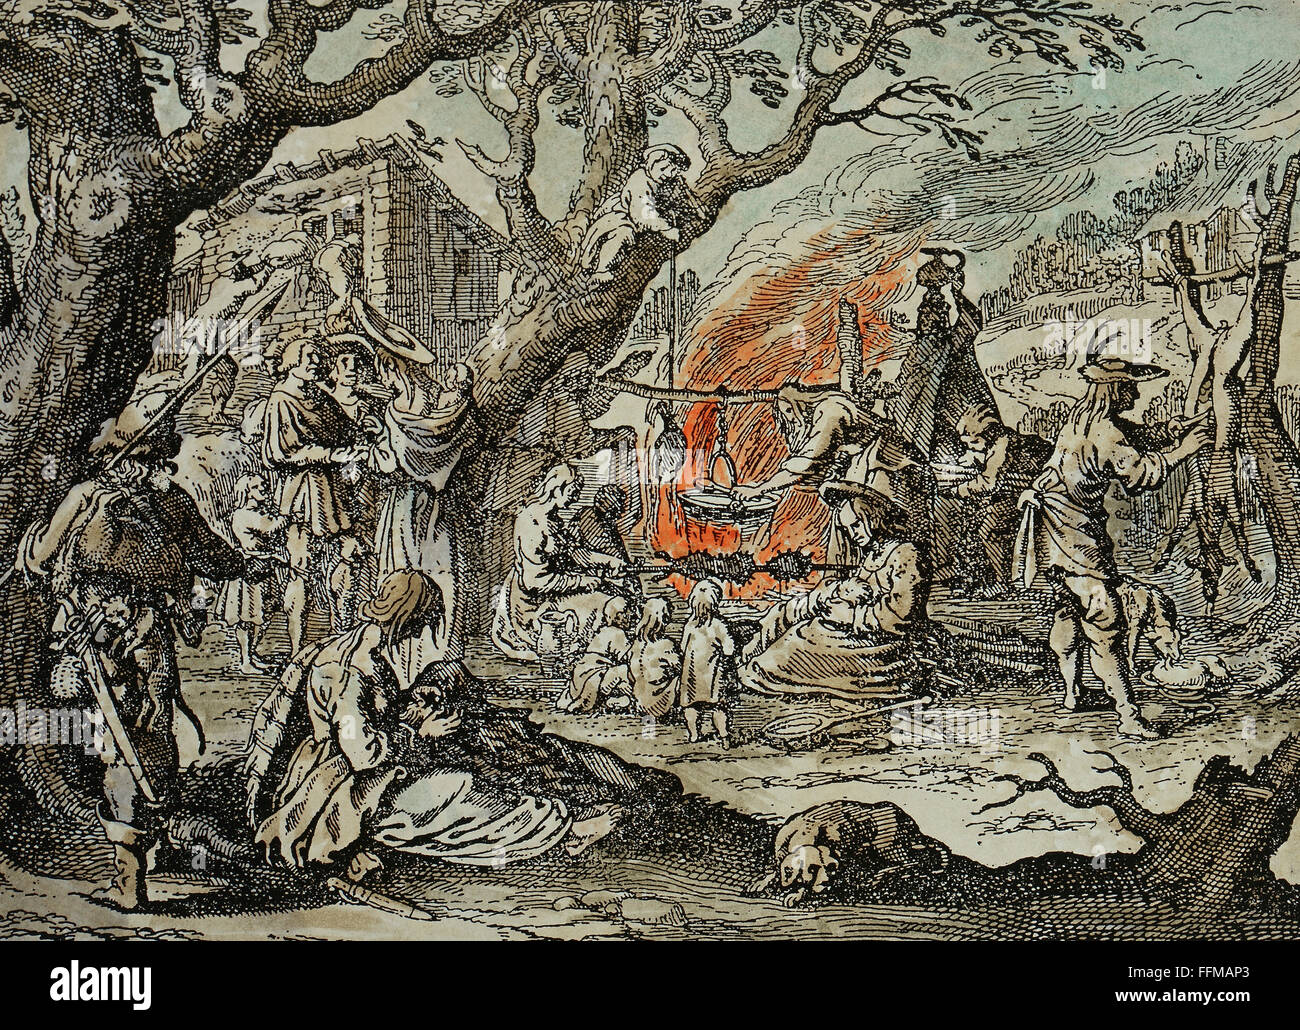 people, Sinti and Romanies, 'Gipsy Camp', copper engraving, coloured, German, 17th century, private collection, - Stock Image